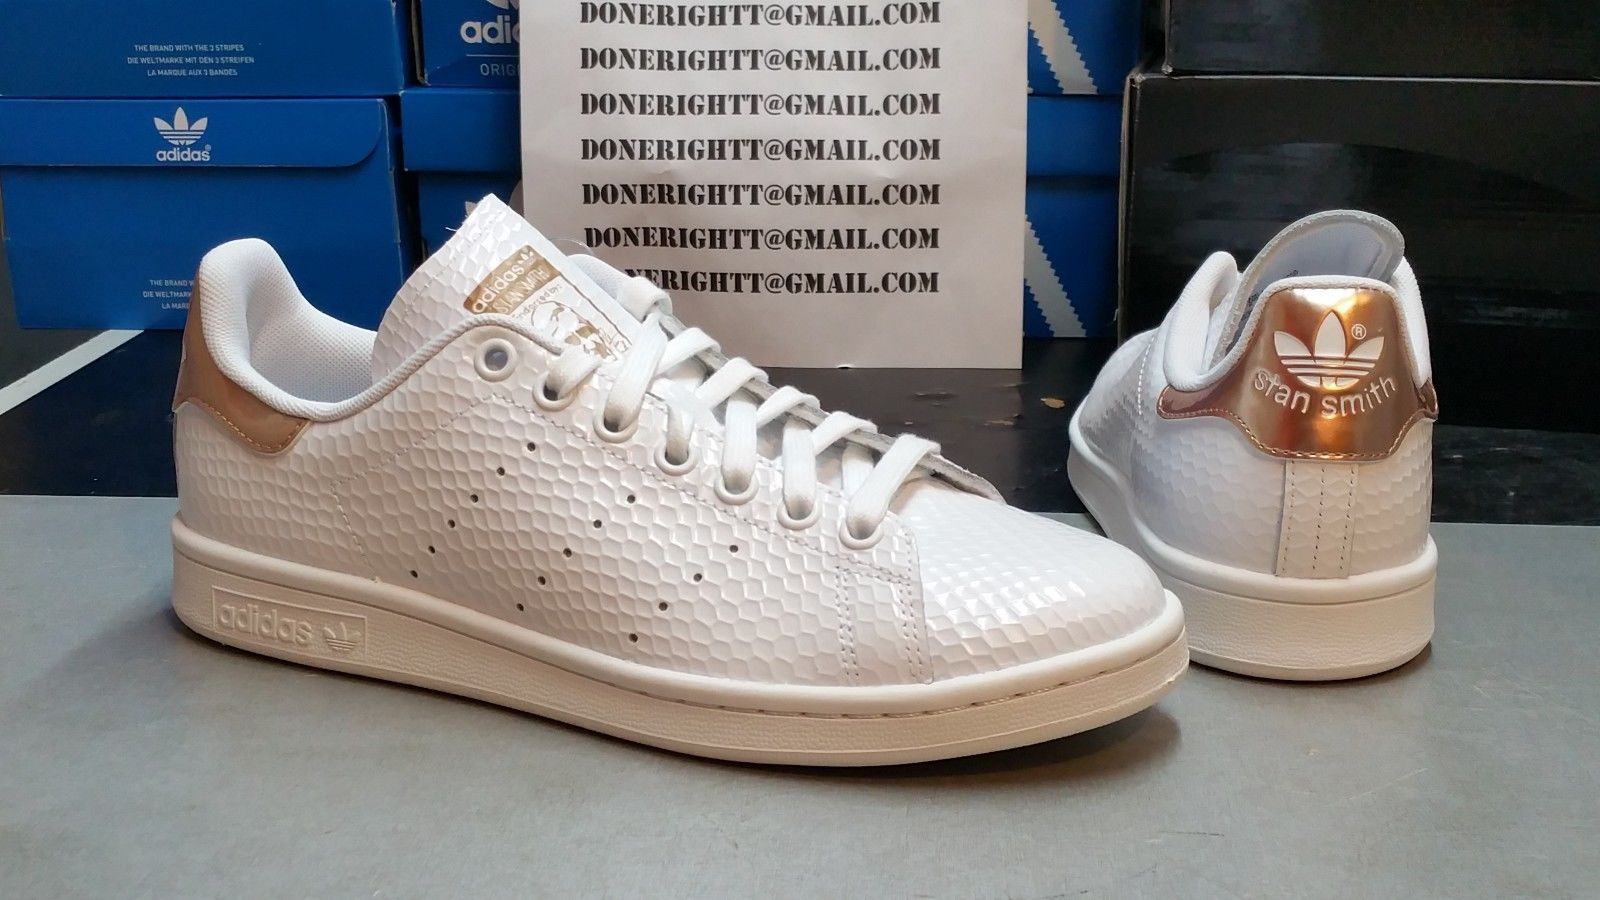 low priced 1b19c 82496 Womens Adidas Stan Smith Copper White Kettle Snakeskin Metallic Rose Gold  Yeezy   eBay, 39